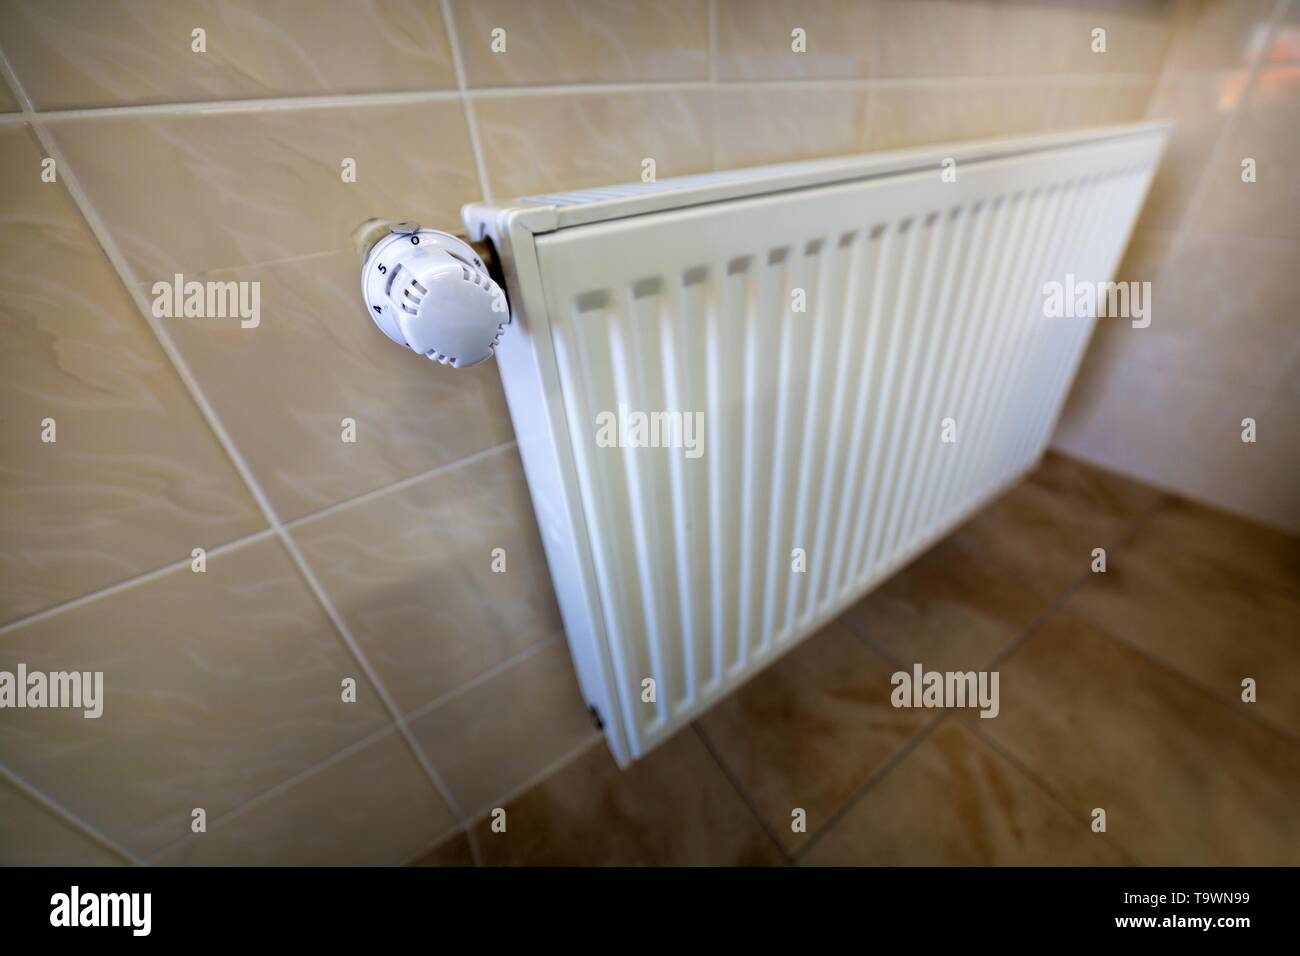 Close-up of white heating radiator with thermostat valve ion tiled walls and floor background. Comfortable warm home interior, climate control, money  - Stock Image